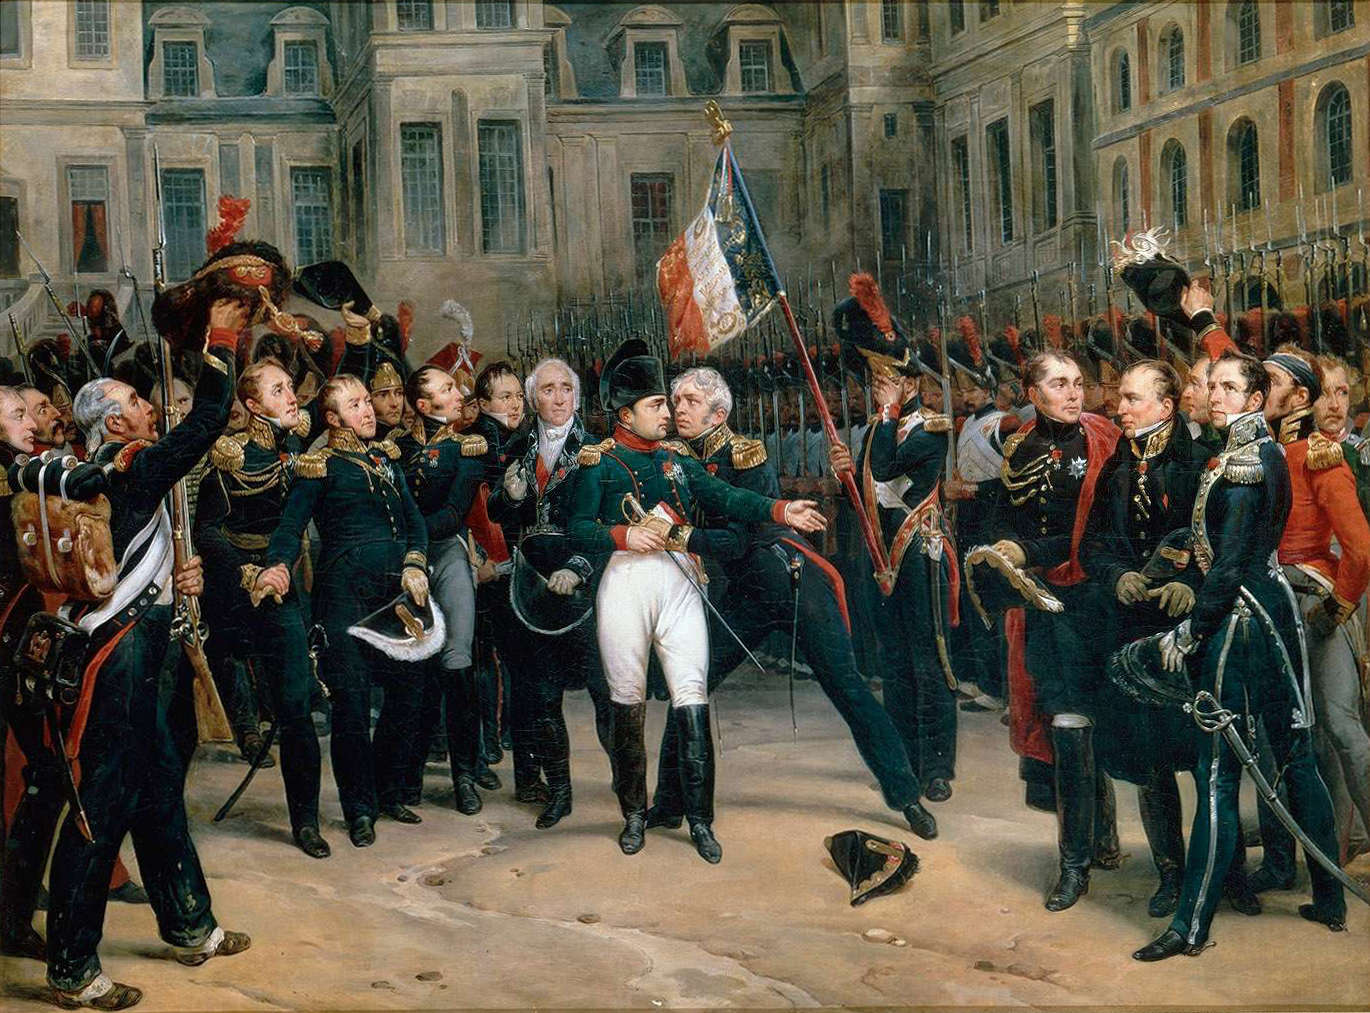 Napoleon's_farewell_to_the_Guard_at_Fontainbleau-April_20th,_1814